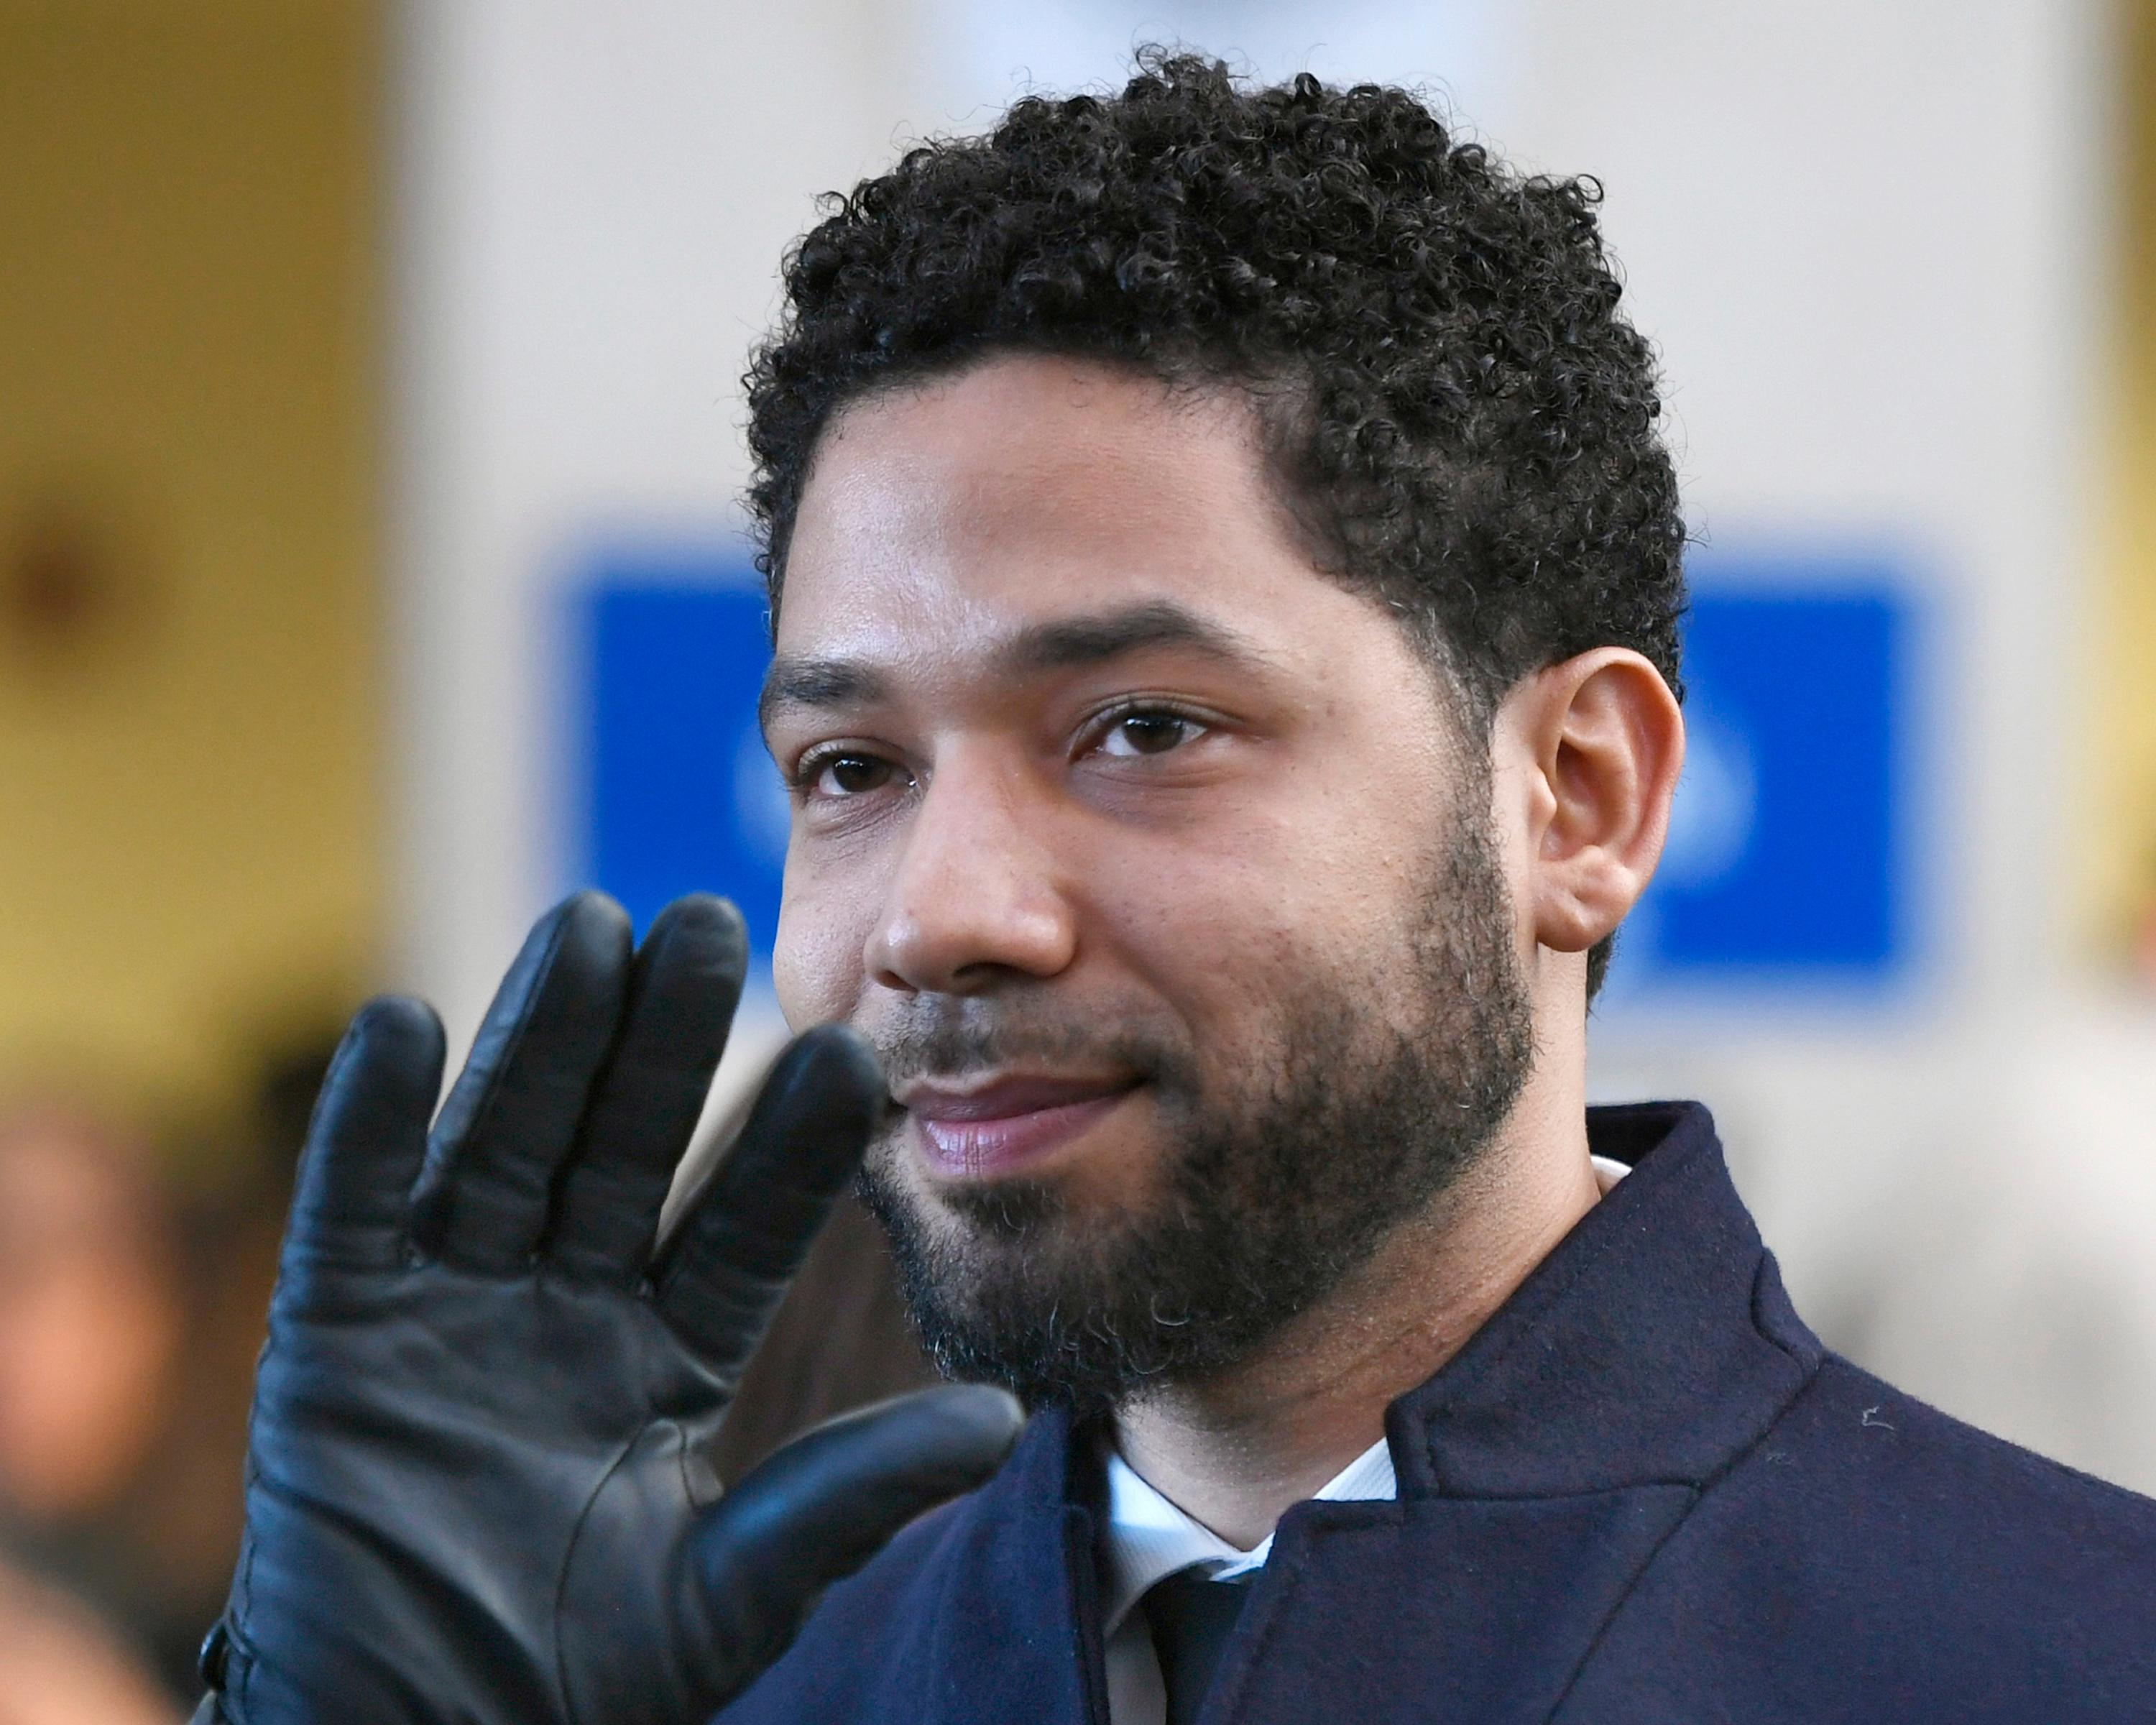 "FILE - In this March 26, 2019, file photo, actor Jussie Smollett smiles and waves to supporters before leaving Cook County Court after his charges were dropped in Chicago. Text messages show the Chicago prosecutor whose office handled the case of ""Empire"" actor Jussie Smollett told her top deputy that Smollett was a ""washed up celeb"" who was overcharged. The office of Cook County State's Attorney Kim Foxx released thousands of documents from the investigation late Tuesday, April 16, 2019, in response to media requests. (AP Photo/Paul Beaty, File)"